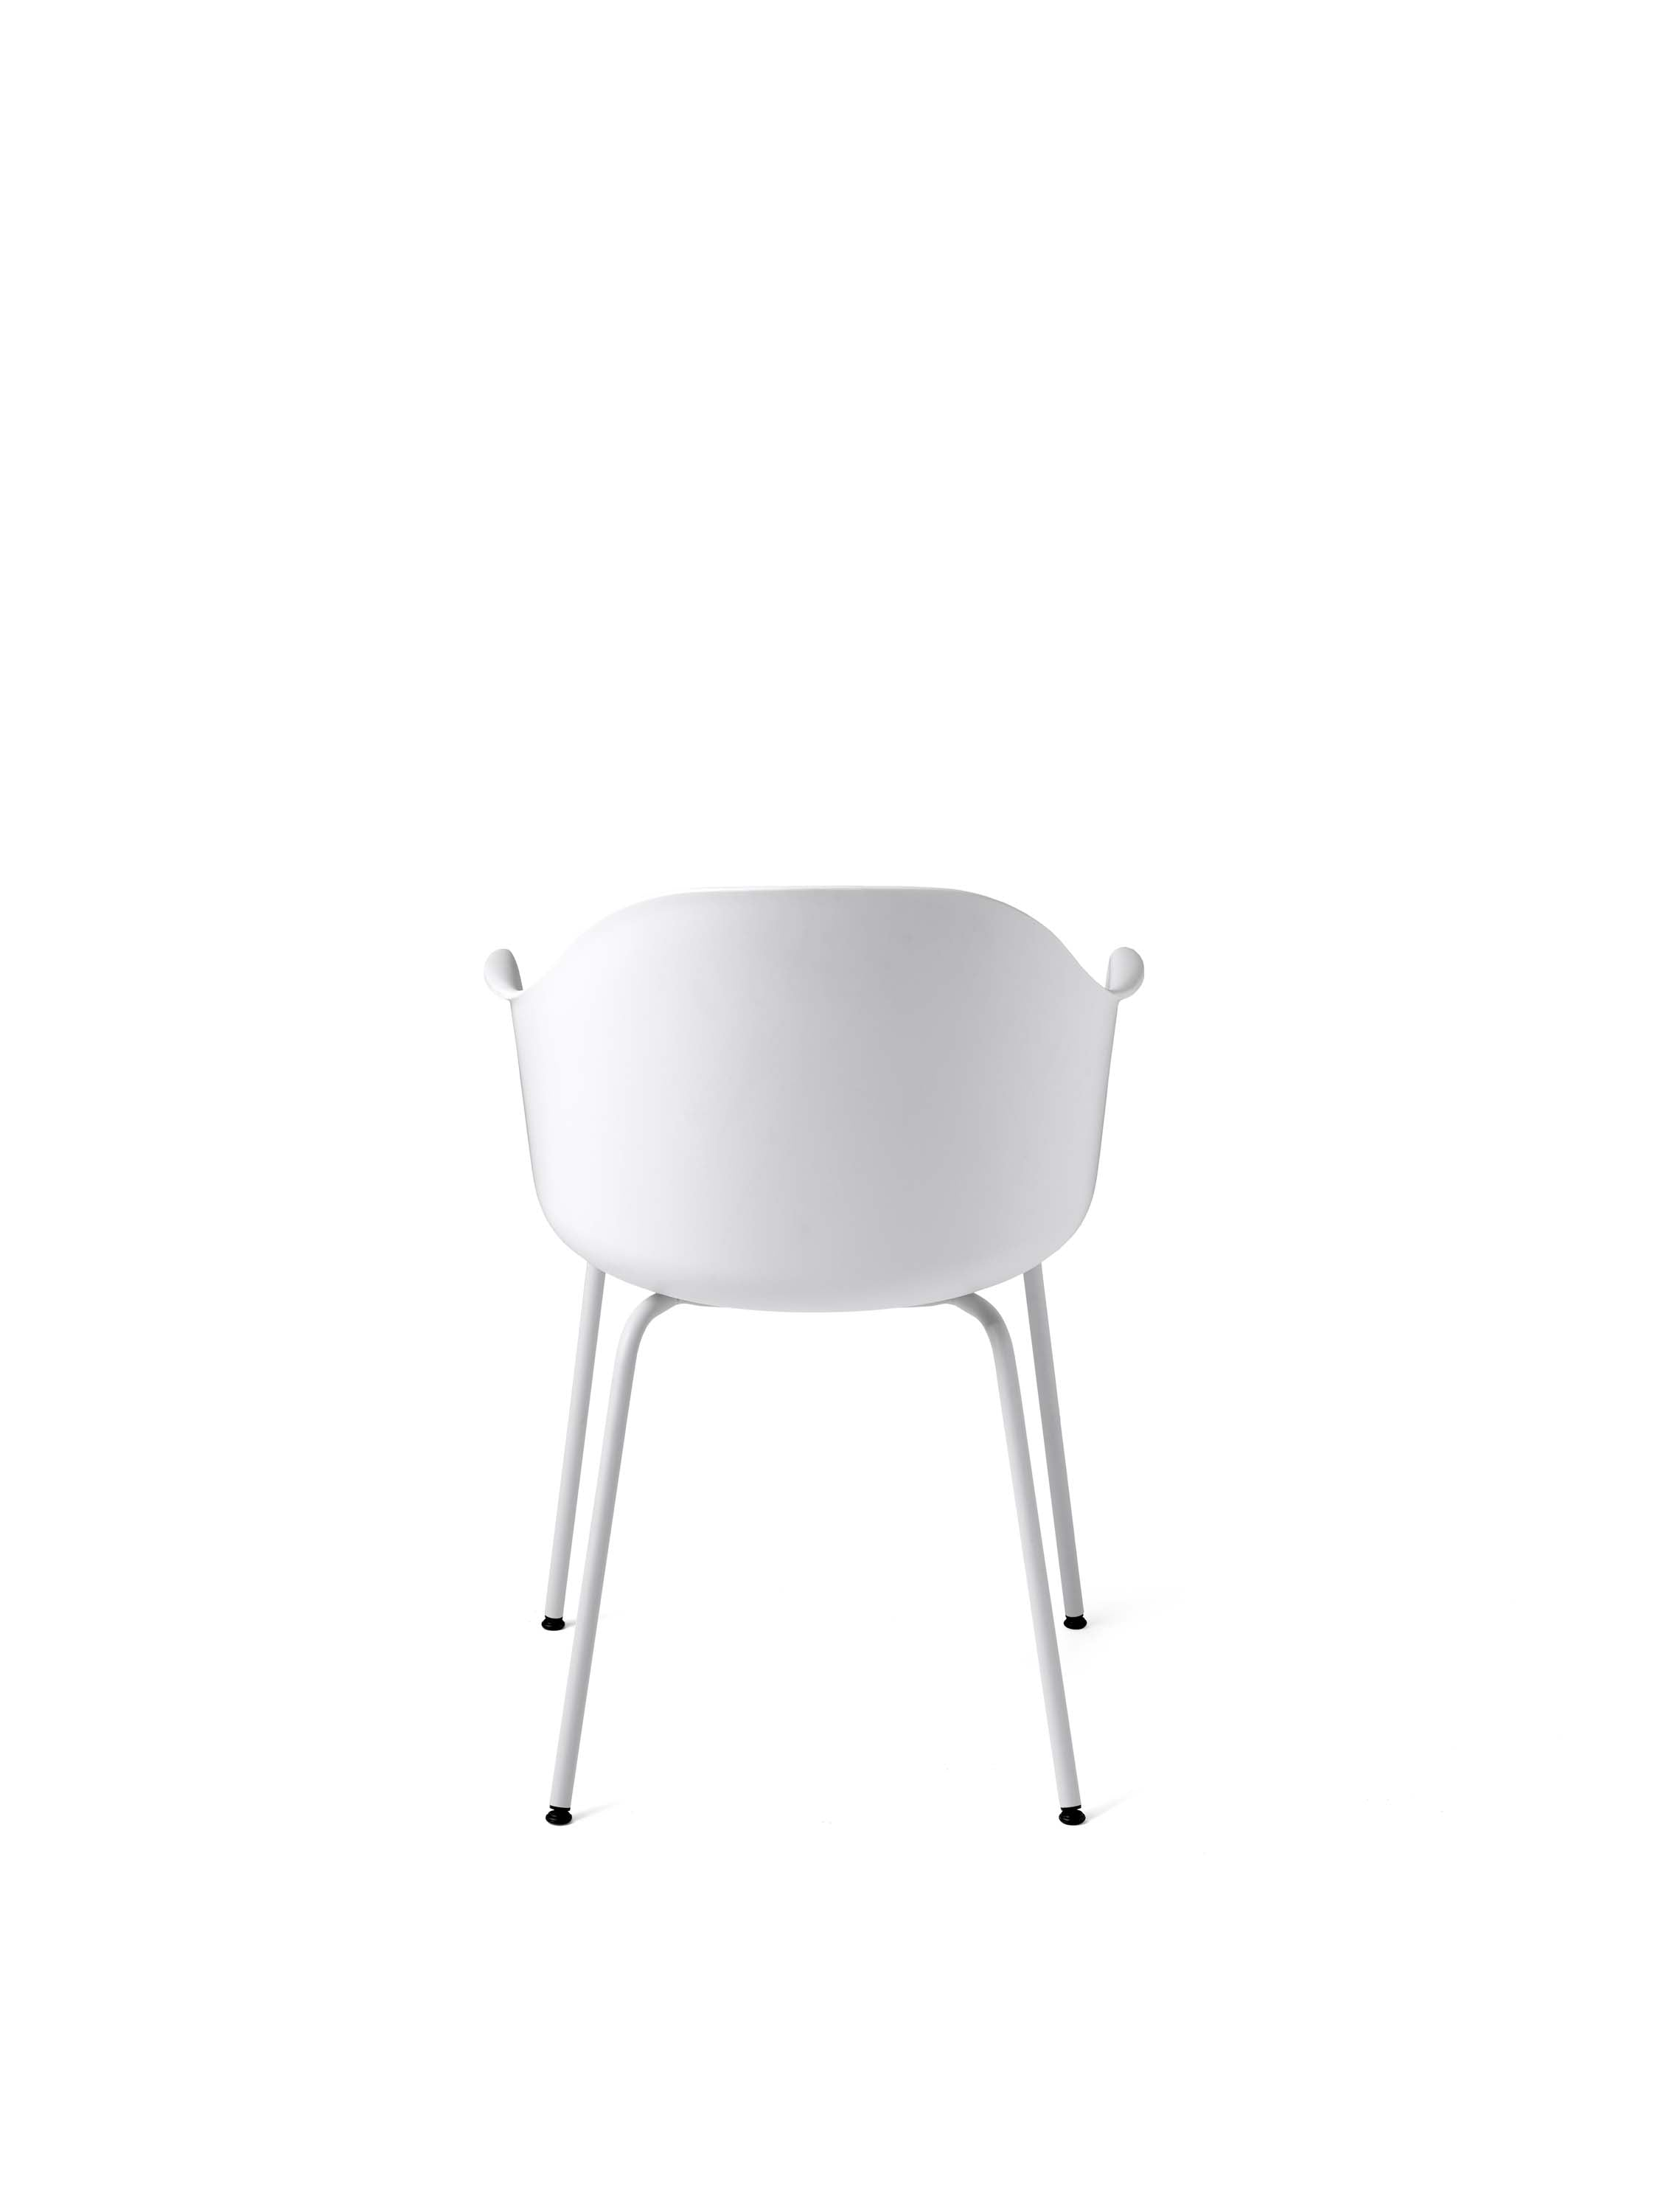 Harbour Chair, White/Light Grey Steel Base fra Menu